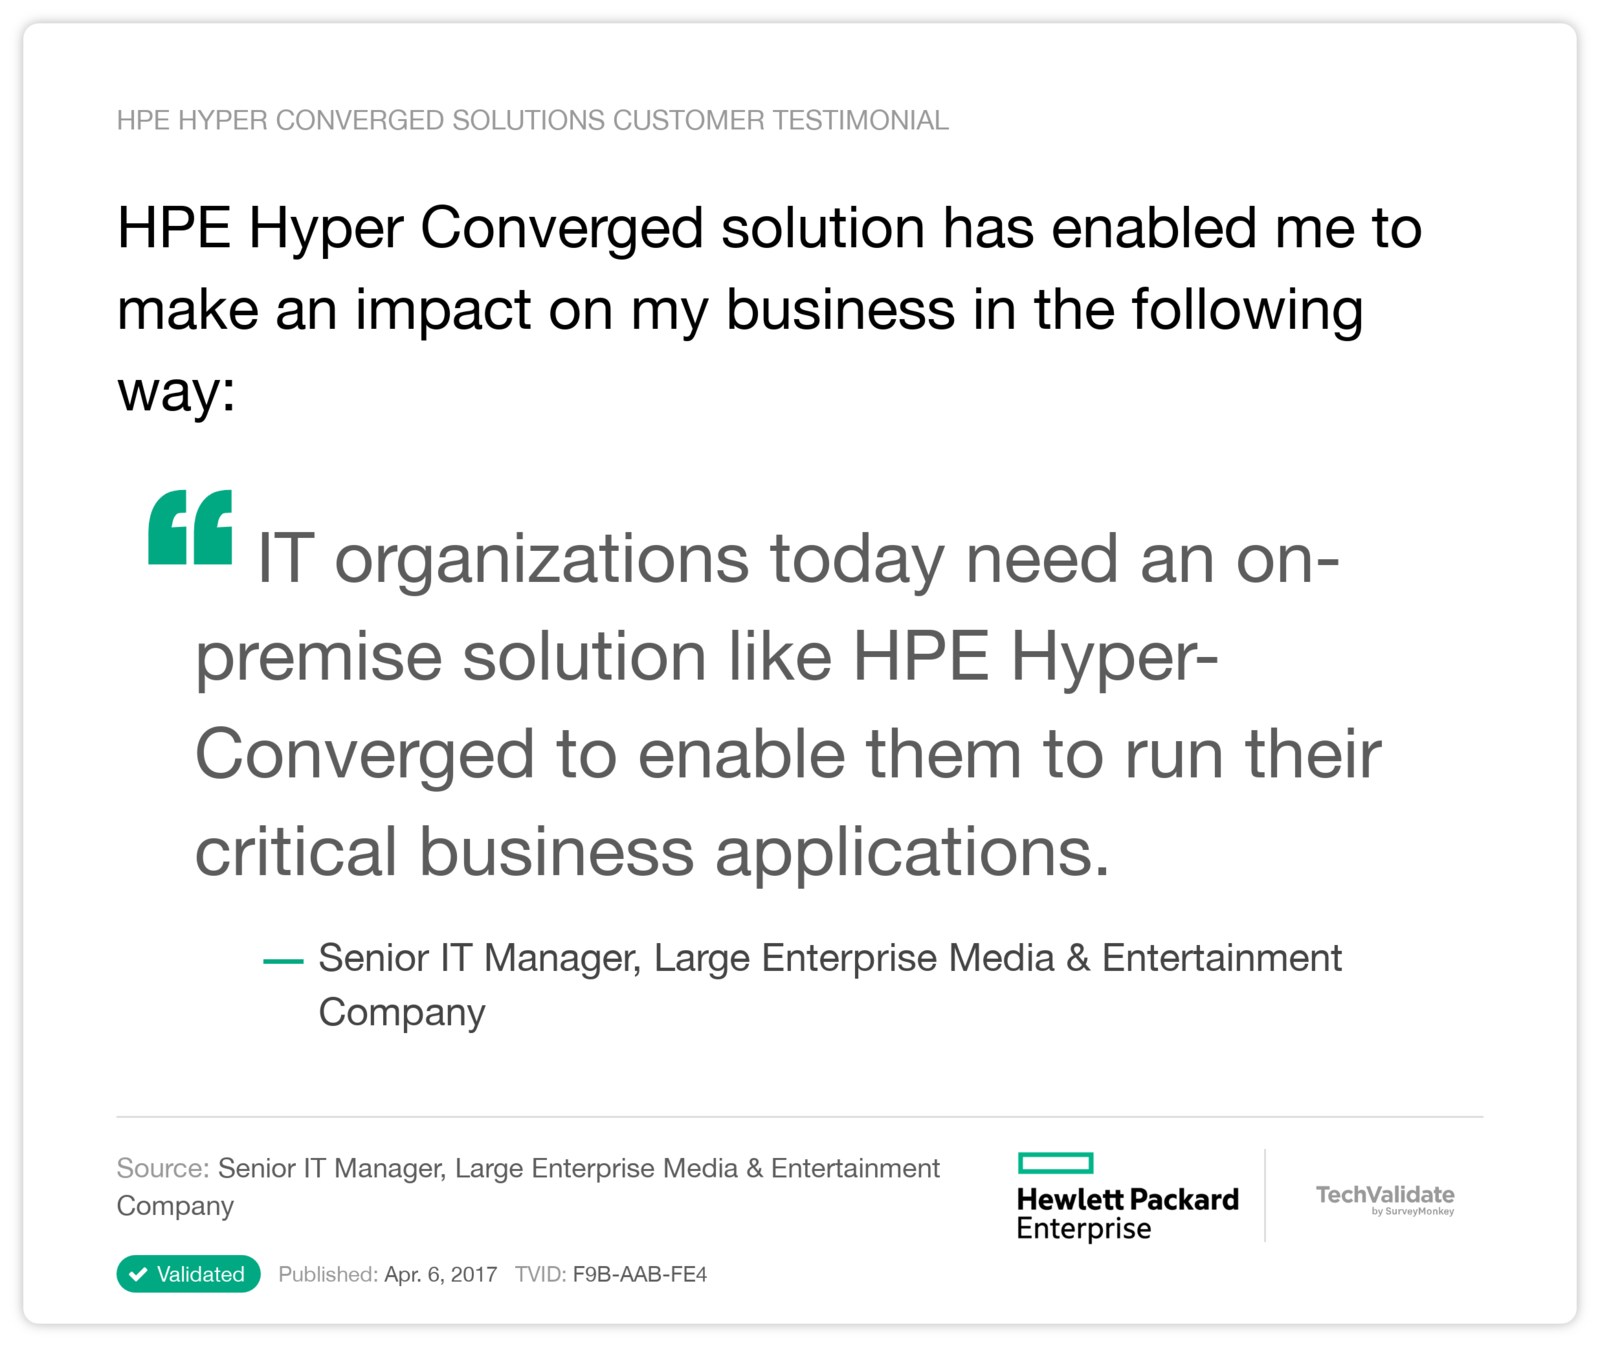 HPE Hyper Converged solution has enabled me to make an impact on my business in the following way: